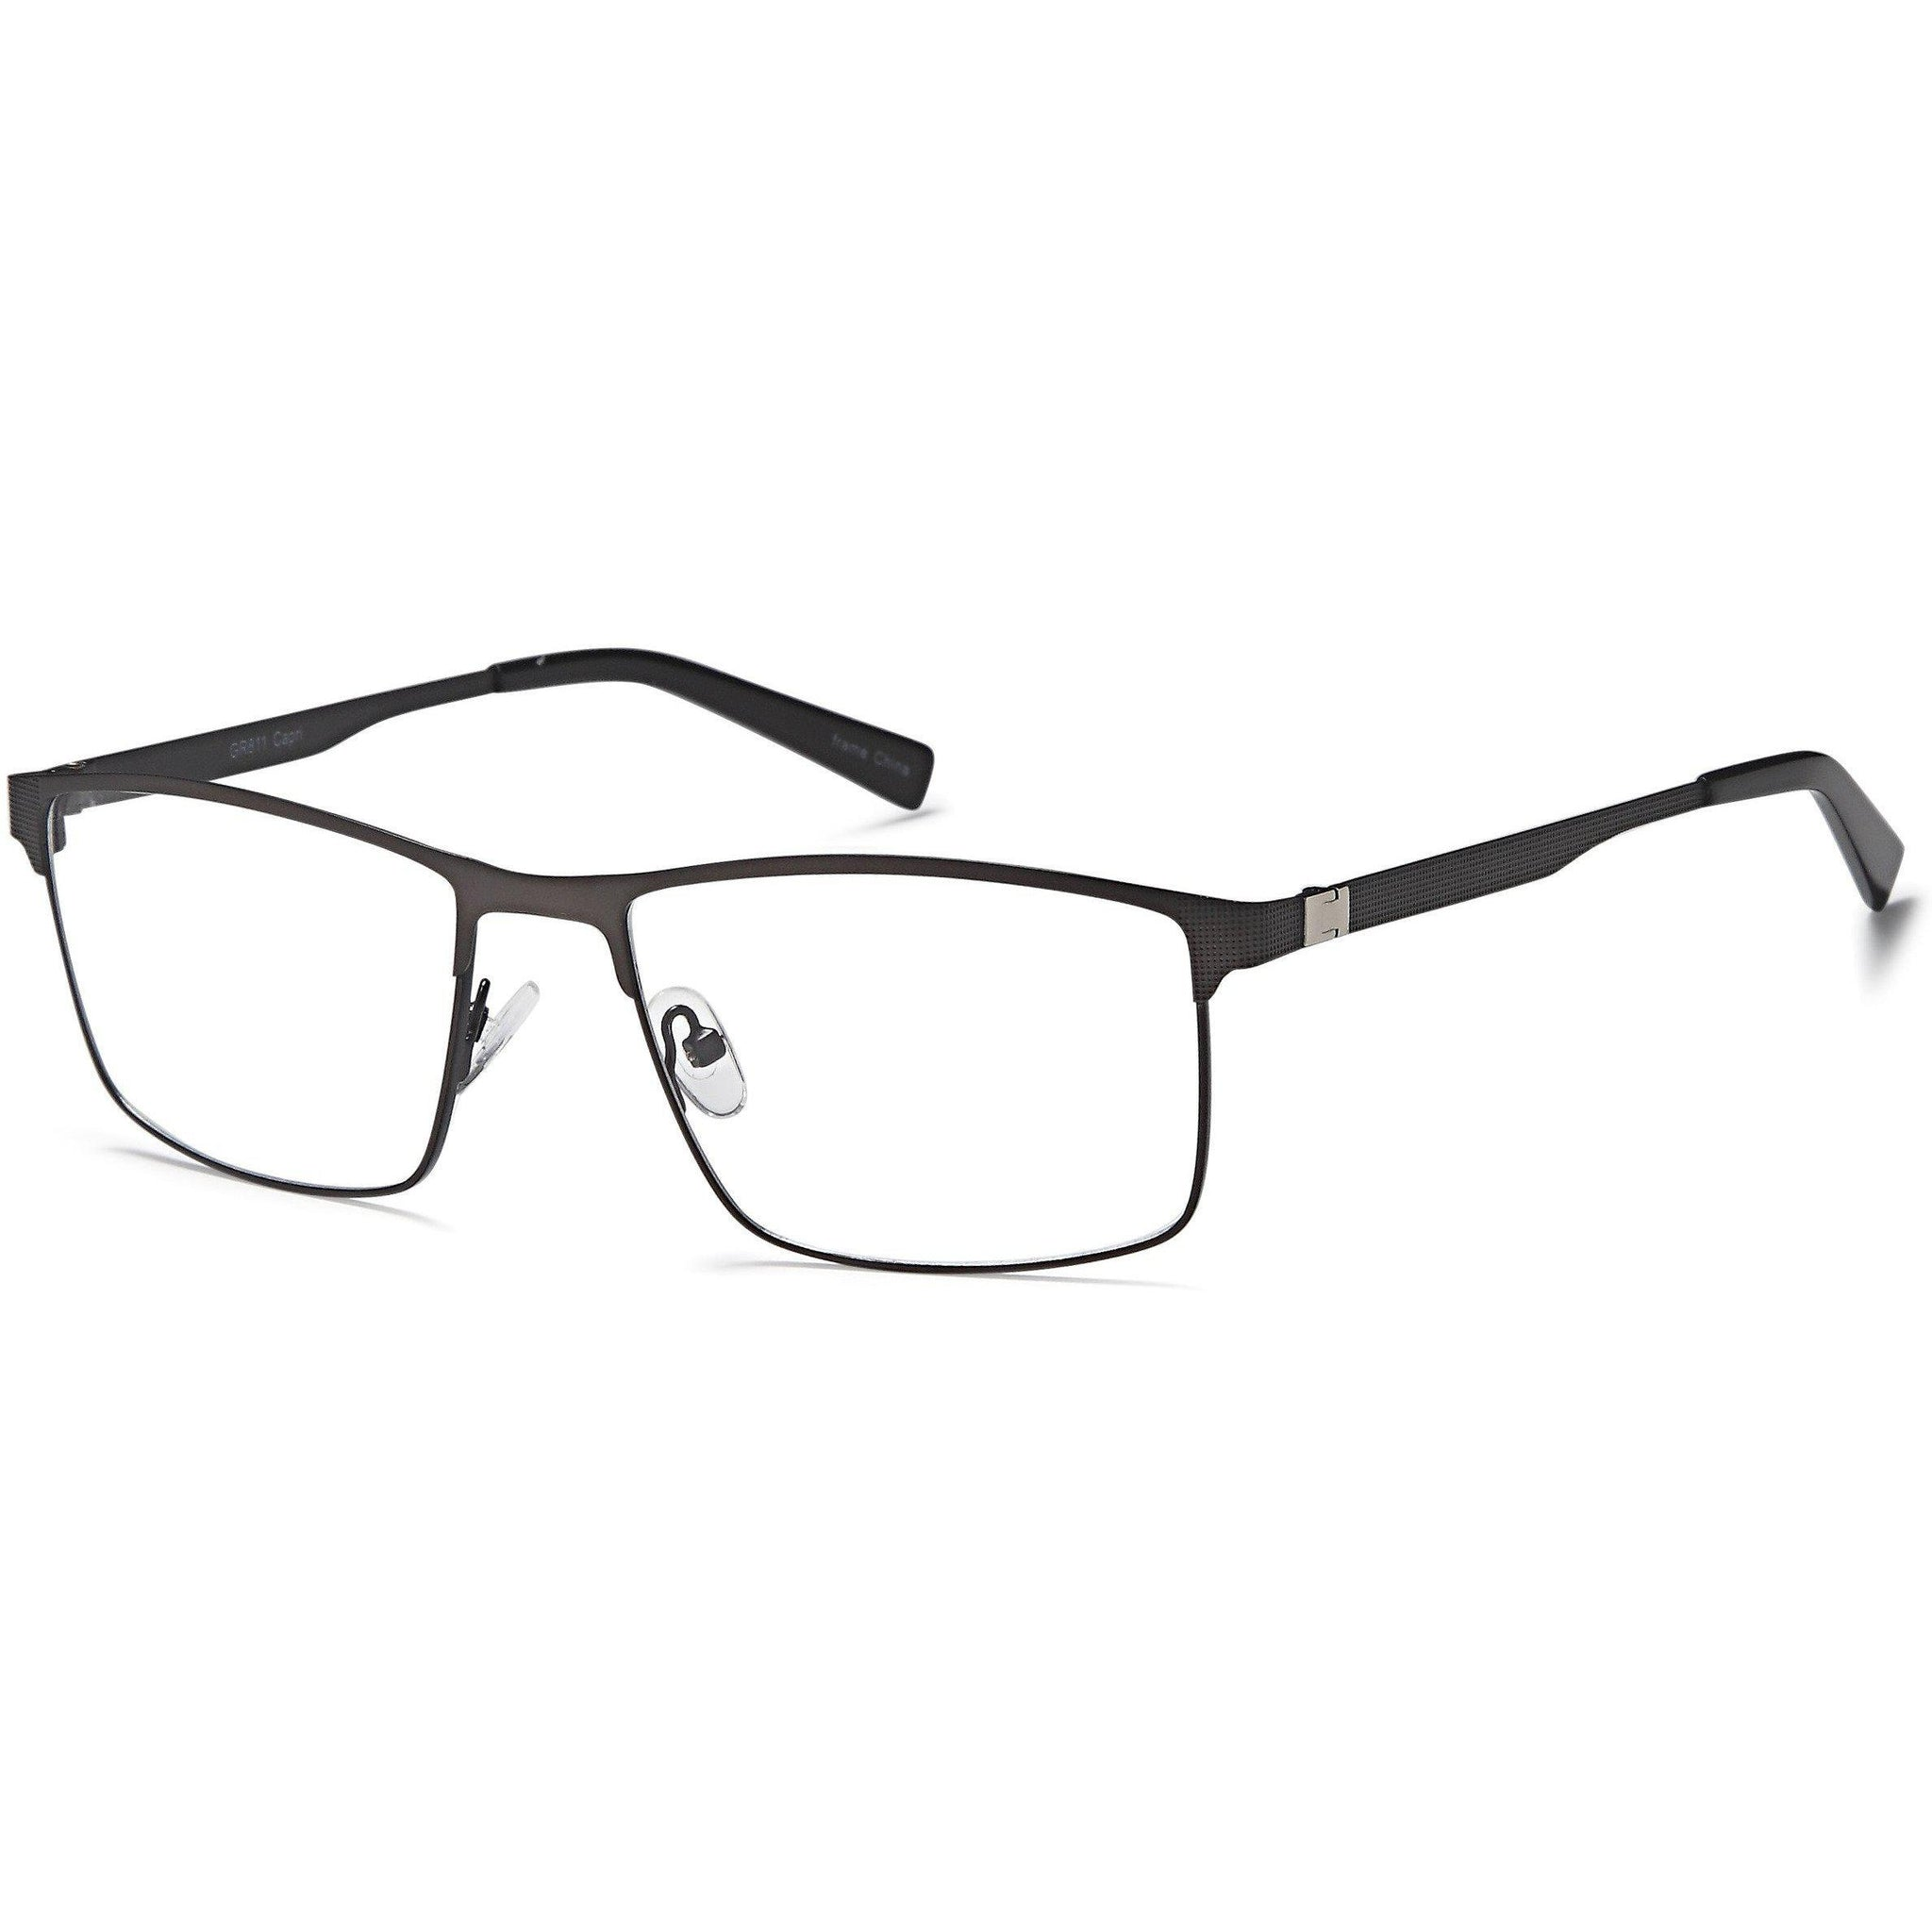 SizeUp Prescription Glasses GR 811 Eyeglasses Frames